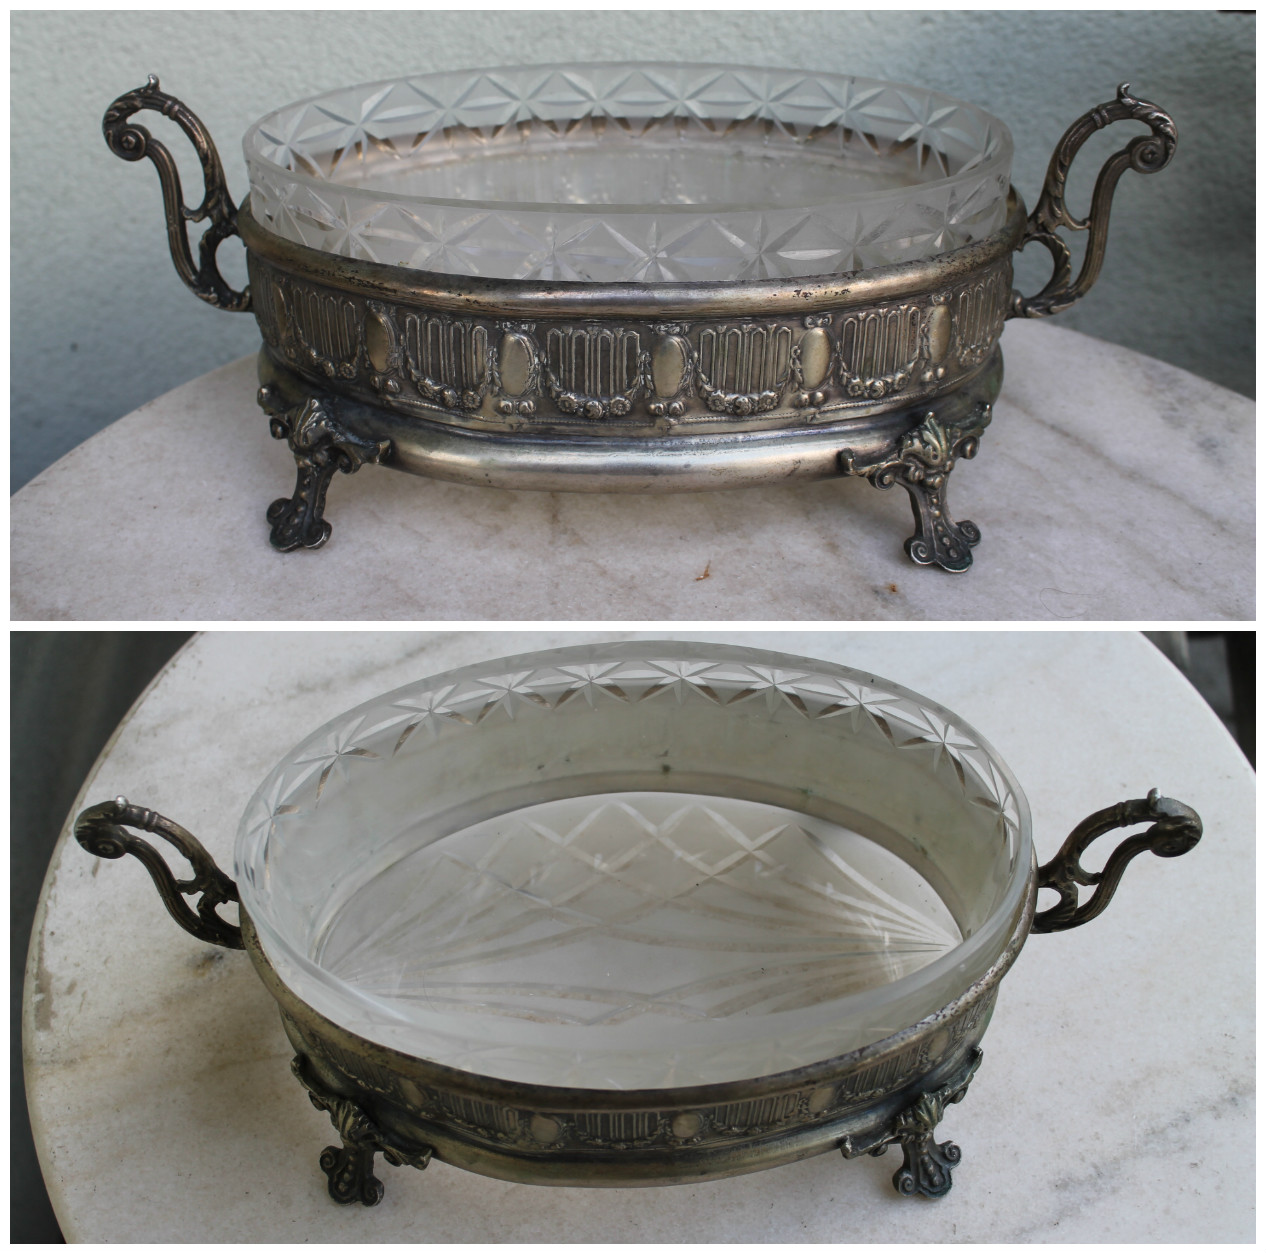 Antique Art-Nouveau Centerpiece vaza. Kaina 187